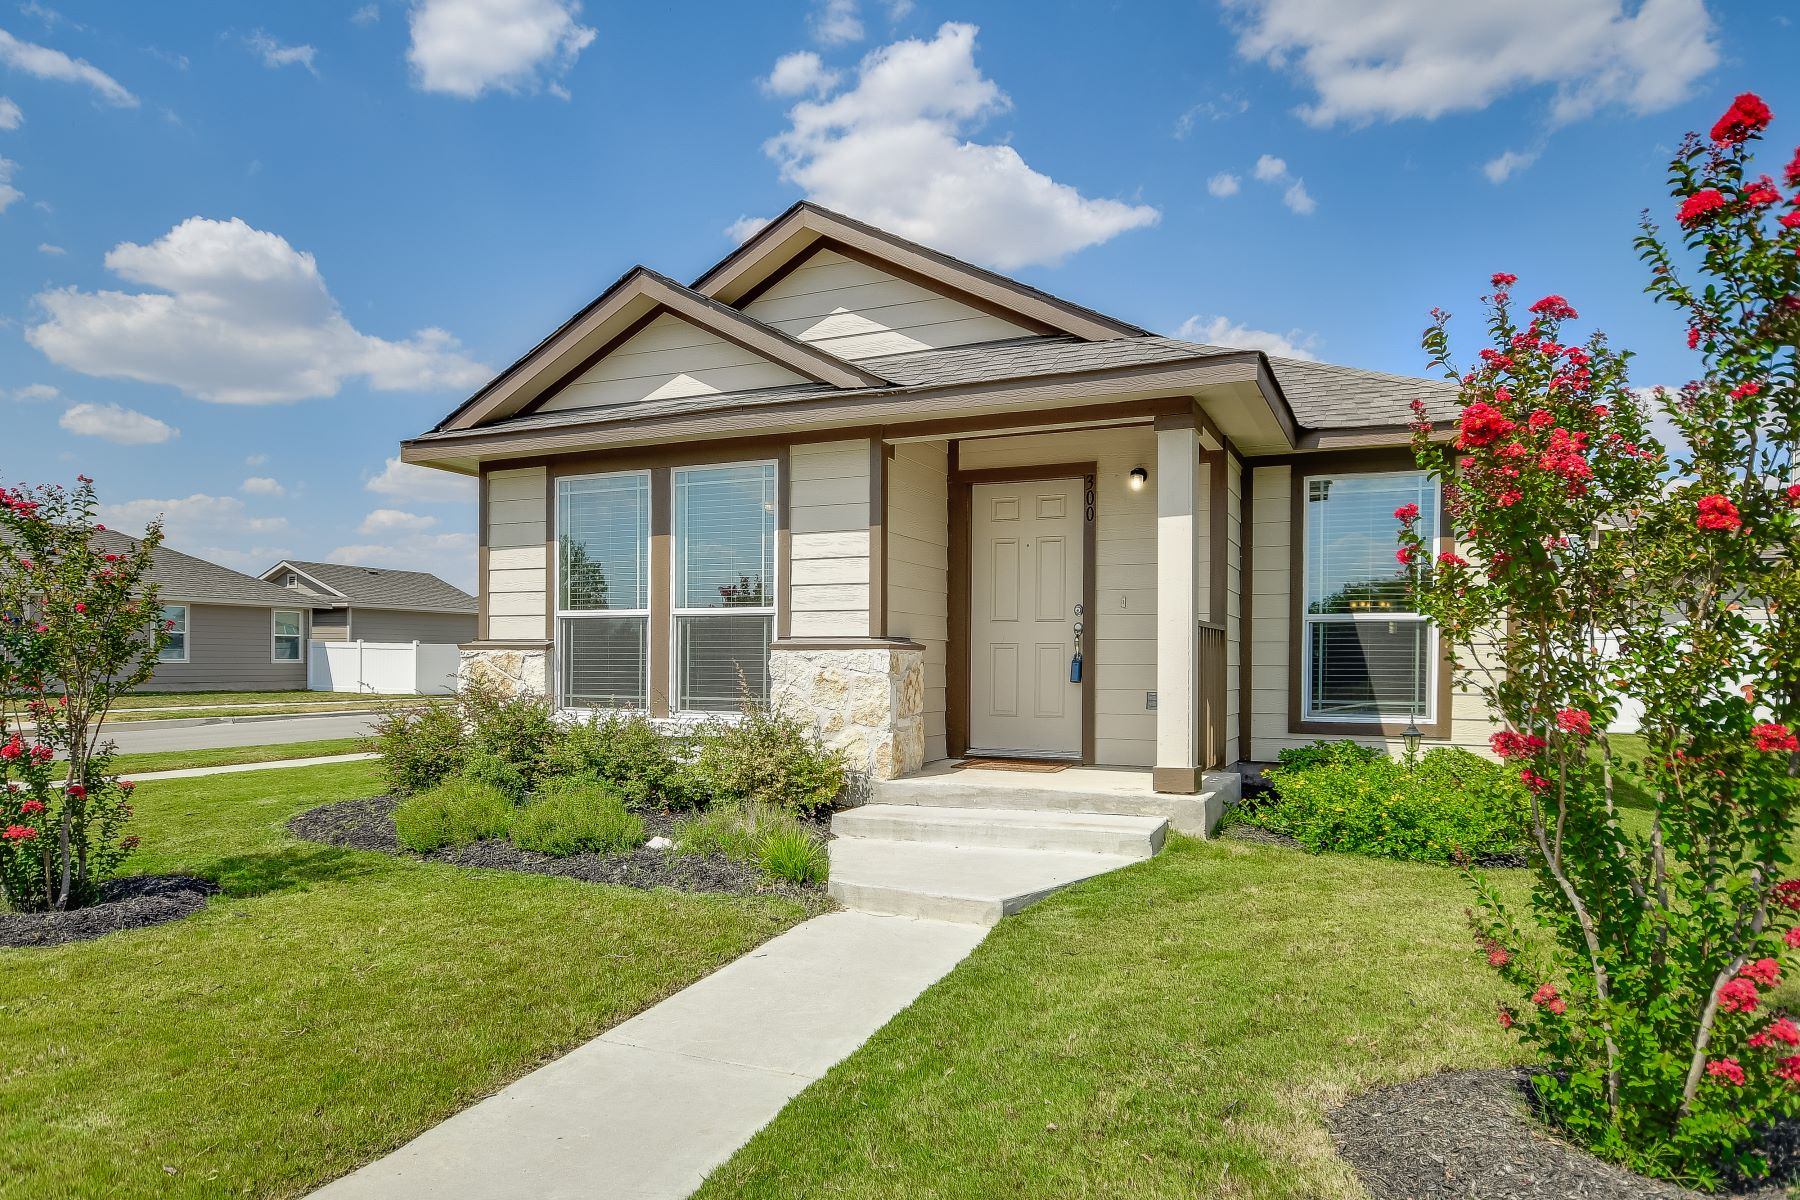 """Single Family Homes for Sale at Beautiful """"Like New"""" Pflugerville Home 300 Craters of the Moon Boulevard, Pflugerville, Texas 78660 United States"""